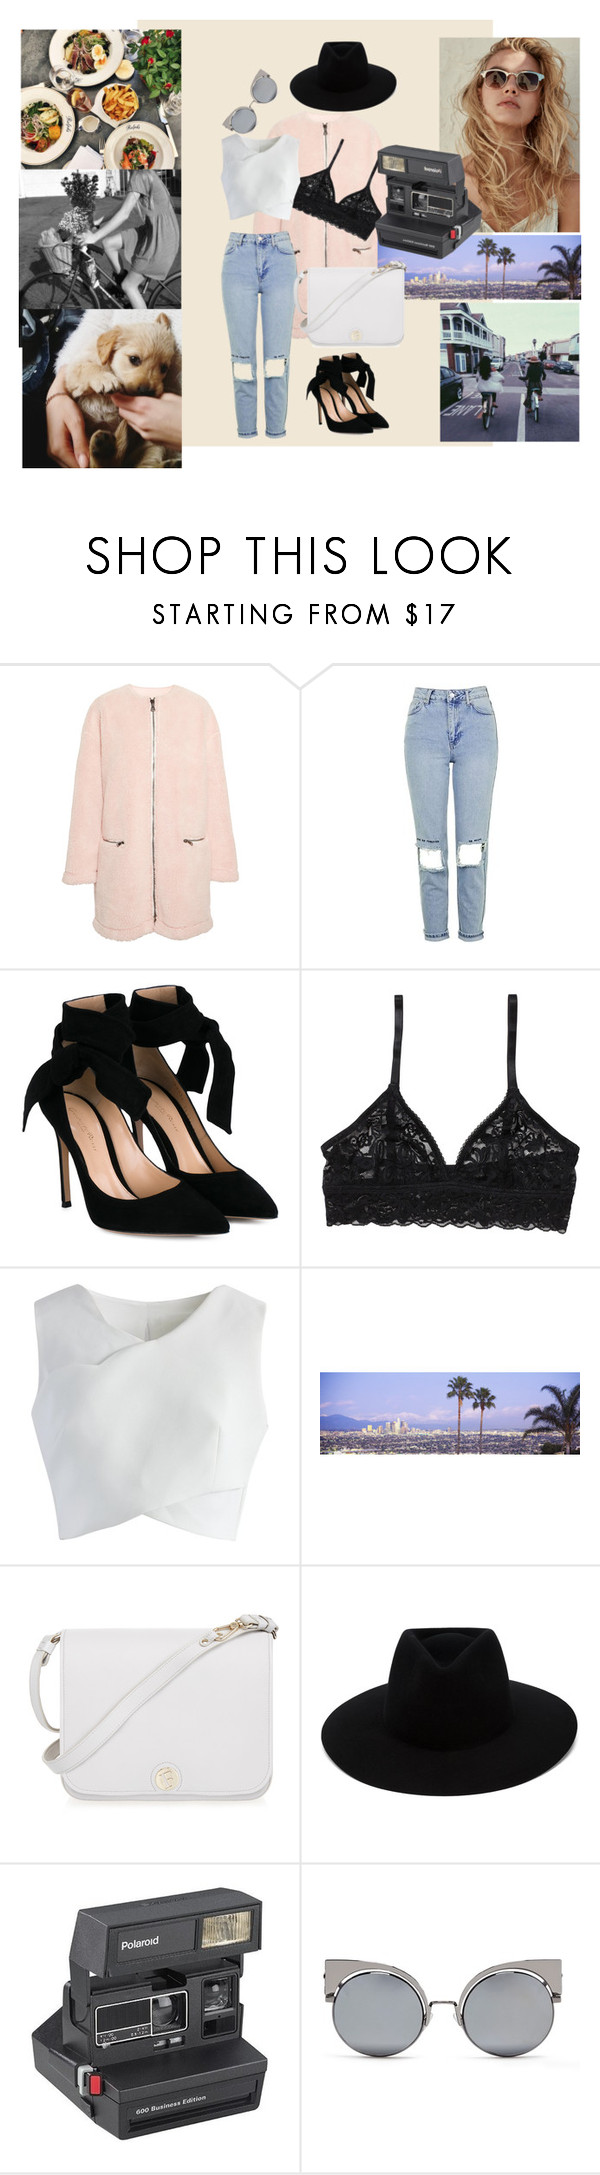 """""""Untitled #112"""" by dars78 ❤ liked on Polyvore featuring MSGM, Topshop, Gianvito Rossi, Monki, Chicwish, Furla, rag & bone, Polaroid and Fendi"""